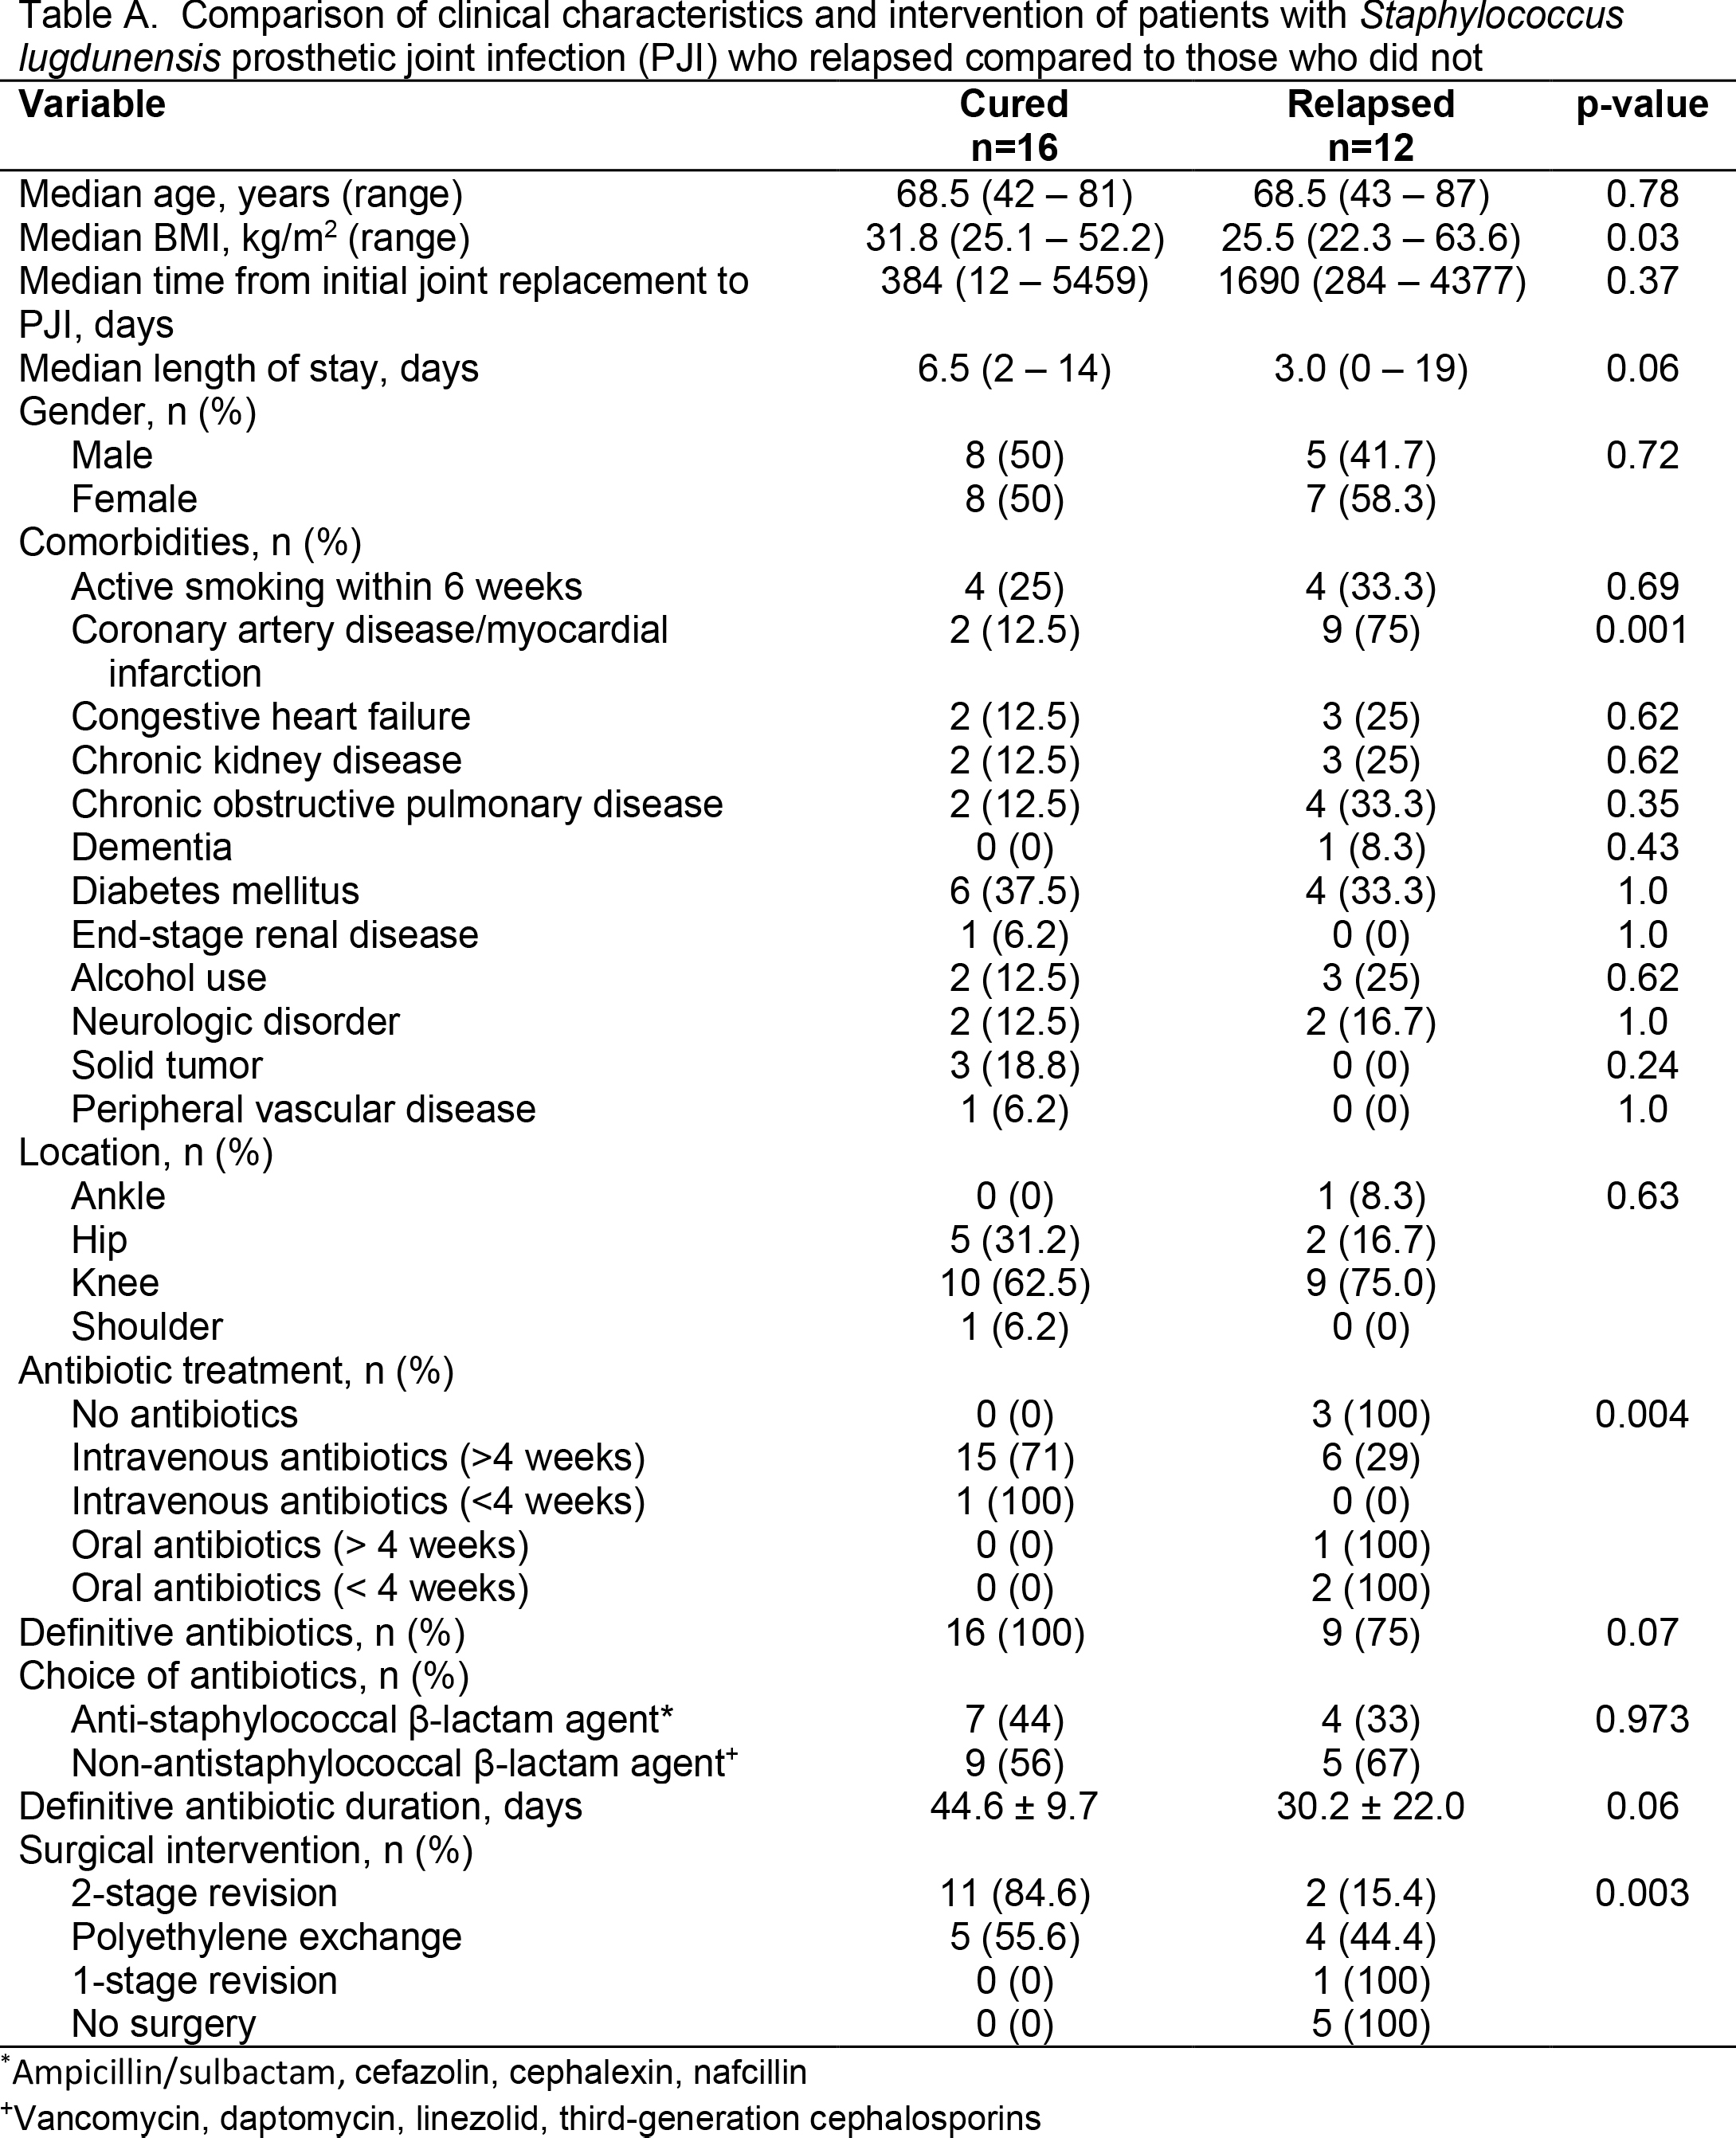 Comparison of clinical characteristics and intervention of patients with Staphylococcus lugdunensis prosthetic joint infection (PJI) who relapsed compared to those who did not